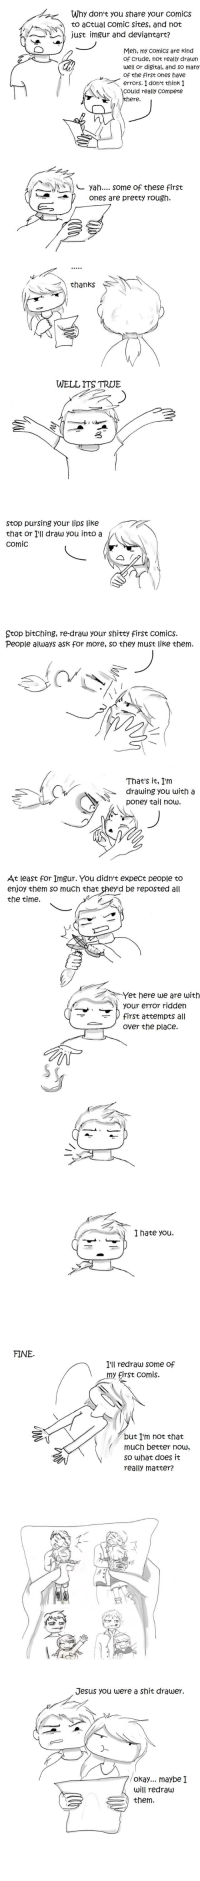 Jesus, Shit, and True: Why don't you share your comics  to actual comic sites, and not  use imgur and deWiantart?  men, my comics are kind  of Crude, noe  uel or disital, and so meny  of the Arse ones have  errors I dorrt think I  realy draun  realy compece  yah....some of these first  ones are pretty rougn  thanks  WELL ITS TRUE  stop pursing your lips like  that or Ill draw you into a  comic  Stop bitching, re-draw your shitty first comics.  People always ask for more, so they must like chem.  Thats it, Im  drauwing you with a  poney tail now.  At least for Imgur. You didnt expect people to  enjoy them so much that  the time.  be reposted all  Yet here we are with  your error ridden  irst attempts all  over the place.  I hate you.  FINE  I'll redraw some of  comis.  but Im not that  much better nouw  so what does it  really matter?  Jesus you were a shit drawer  okay... maybe I  will redrauw)  them.